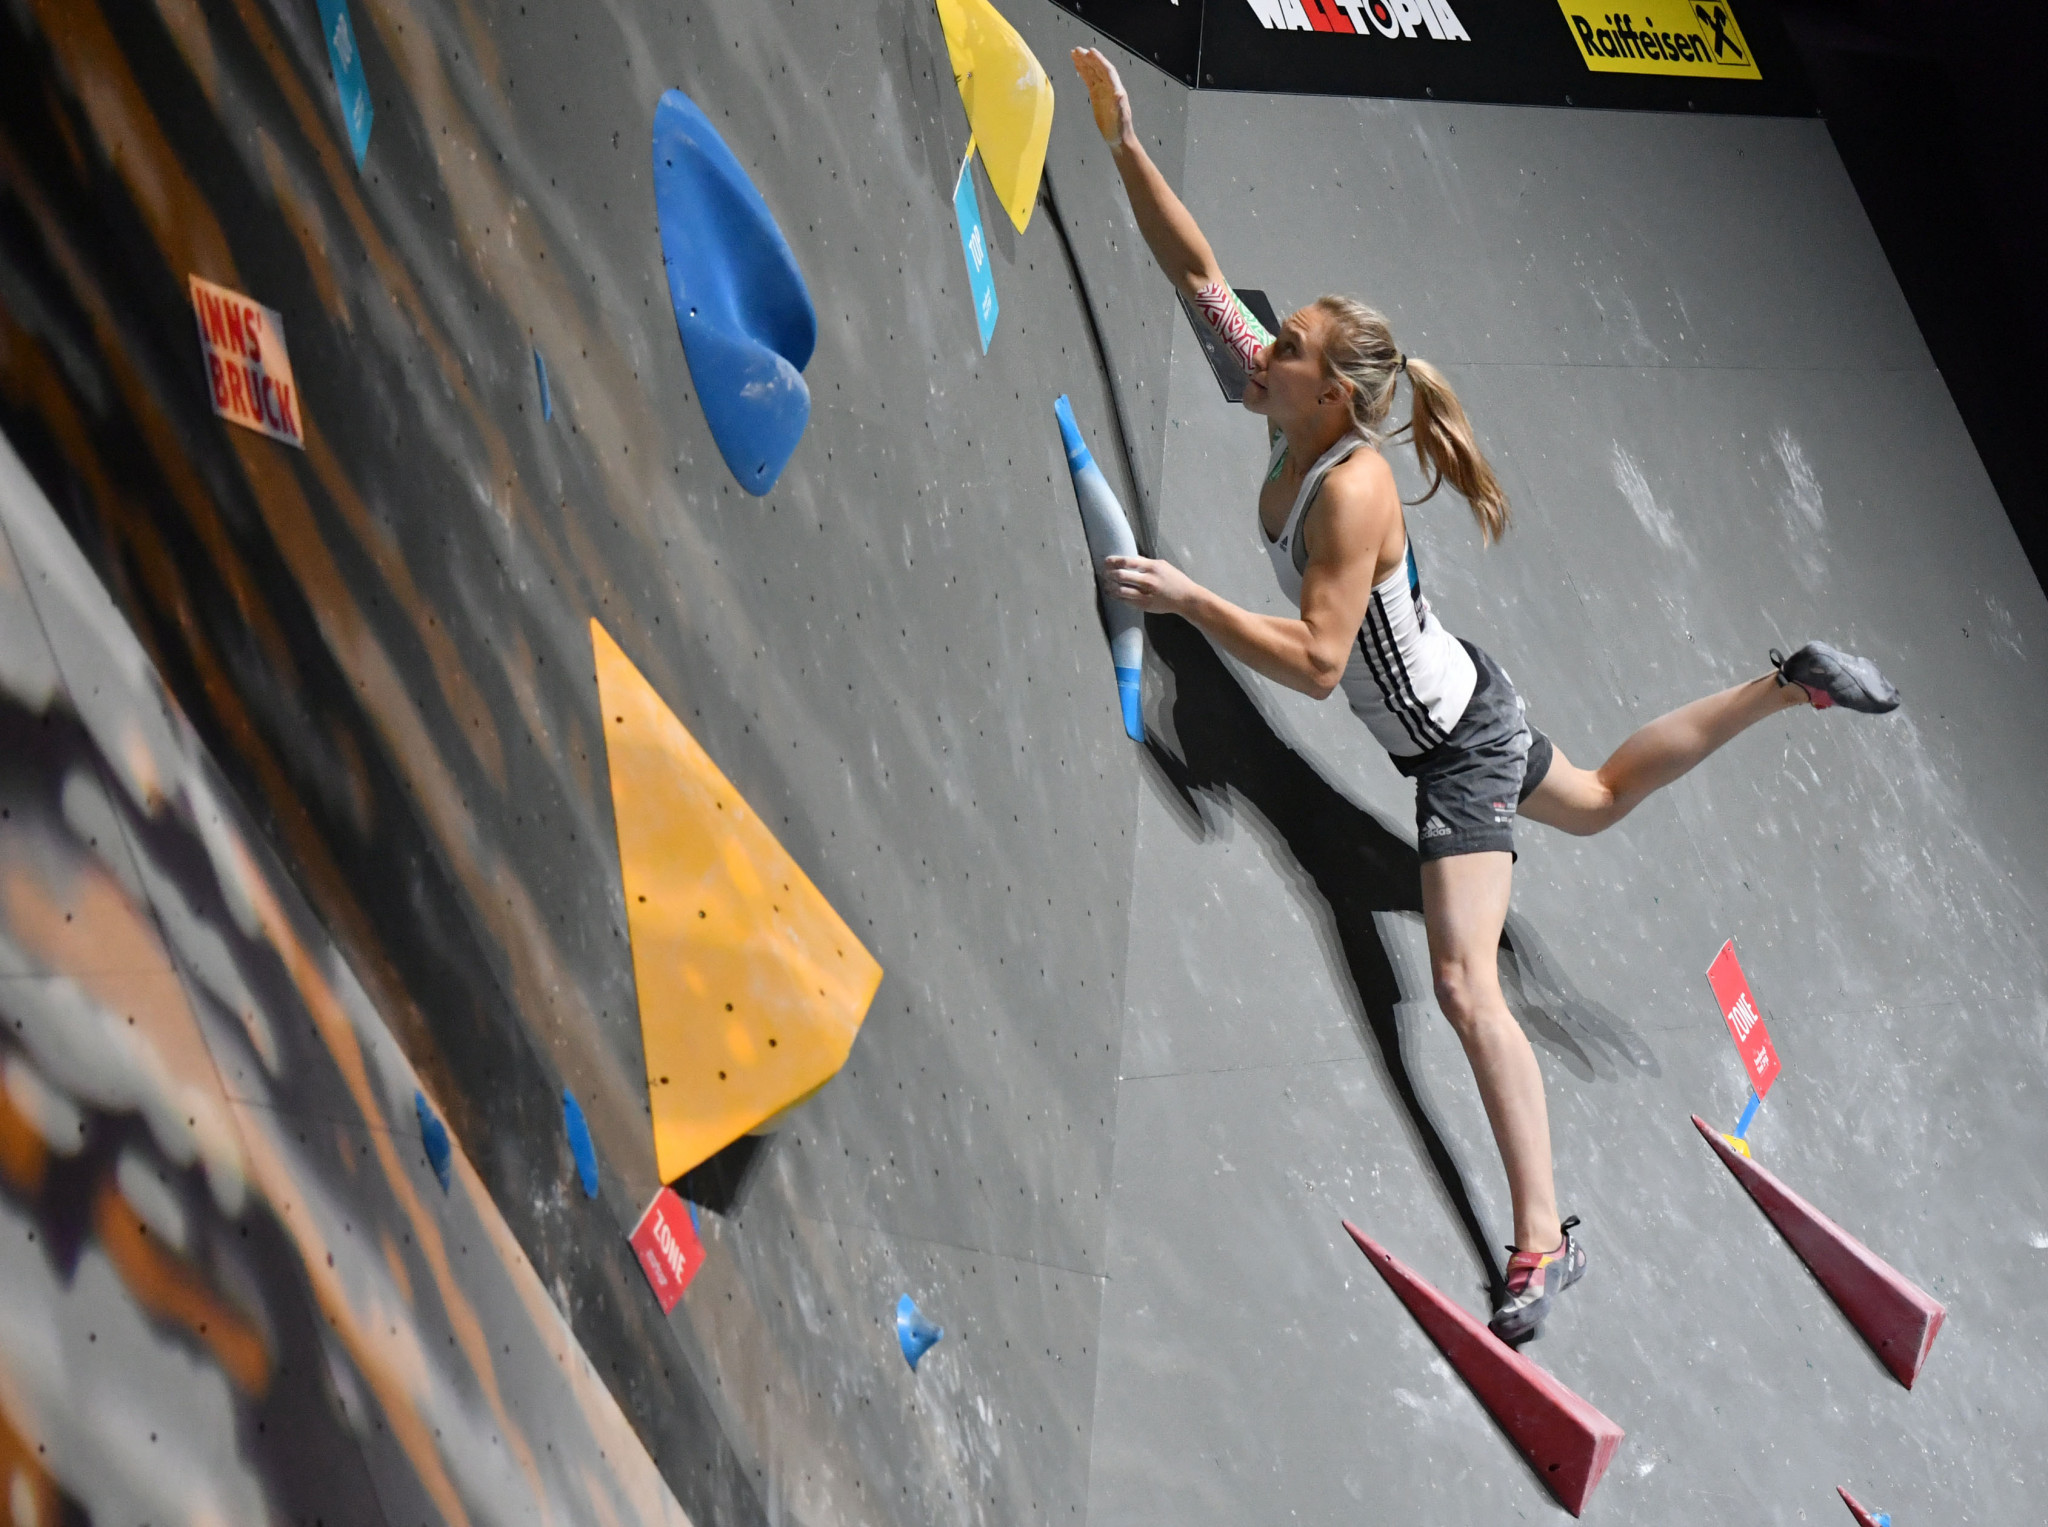 Garnbet tops bouldering qualification at IFSC World Cup in Wujiang